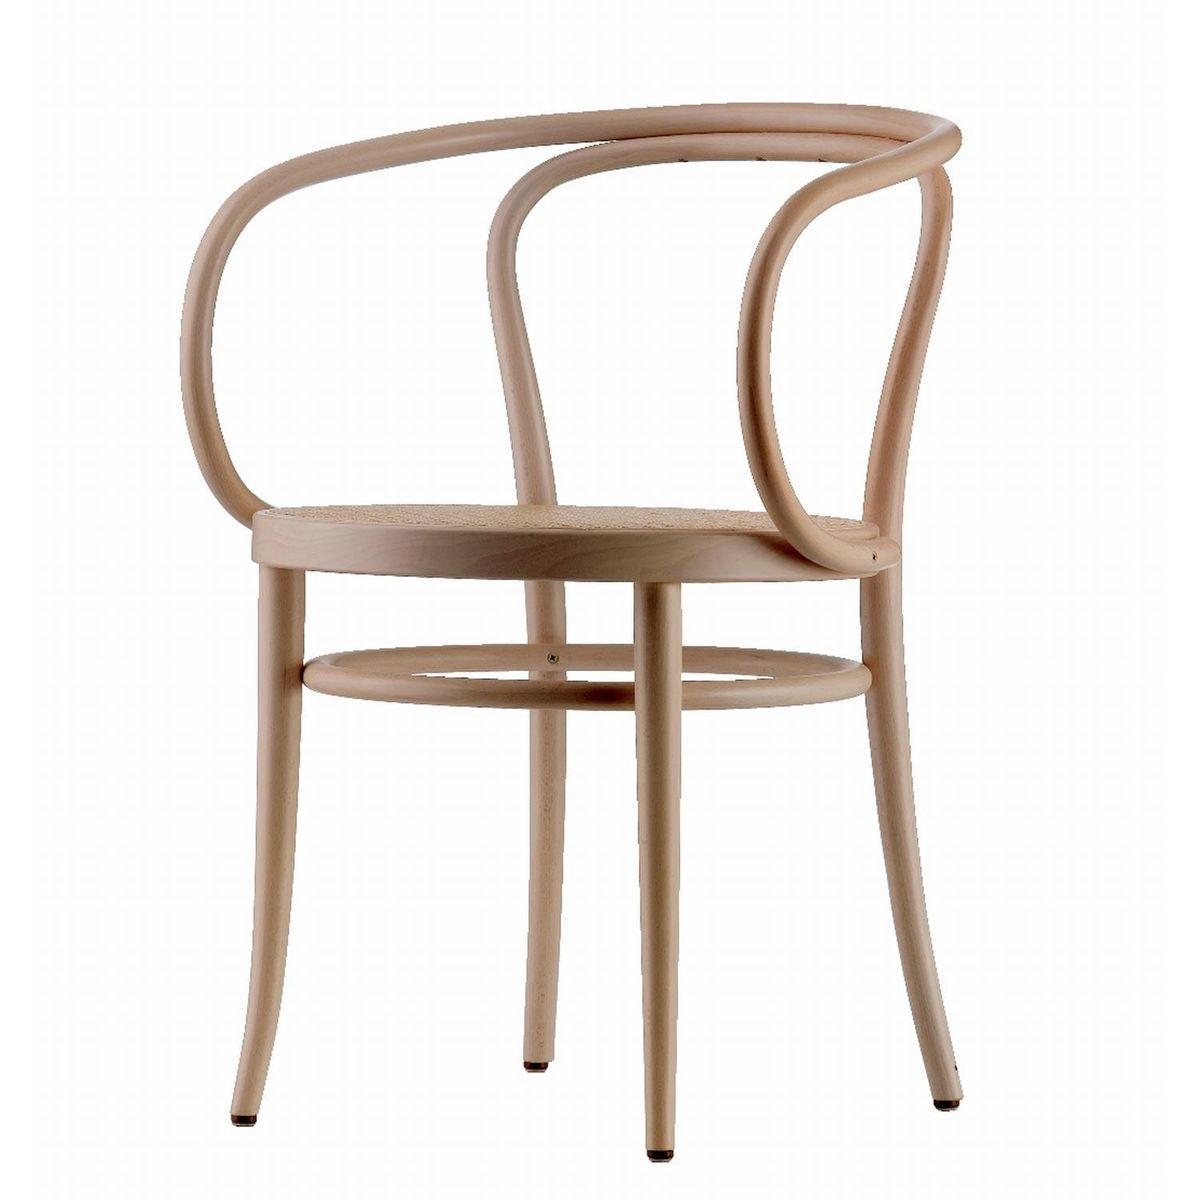 Thonet 209 210 armchair thonet for Chaise bistrot thonet